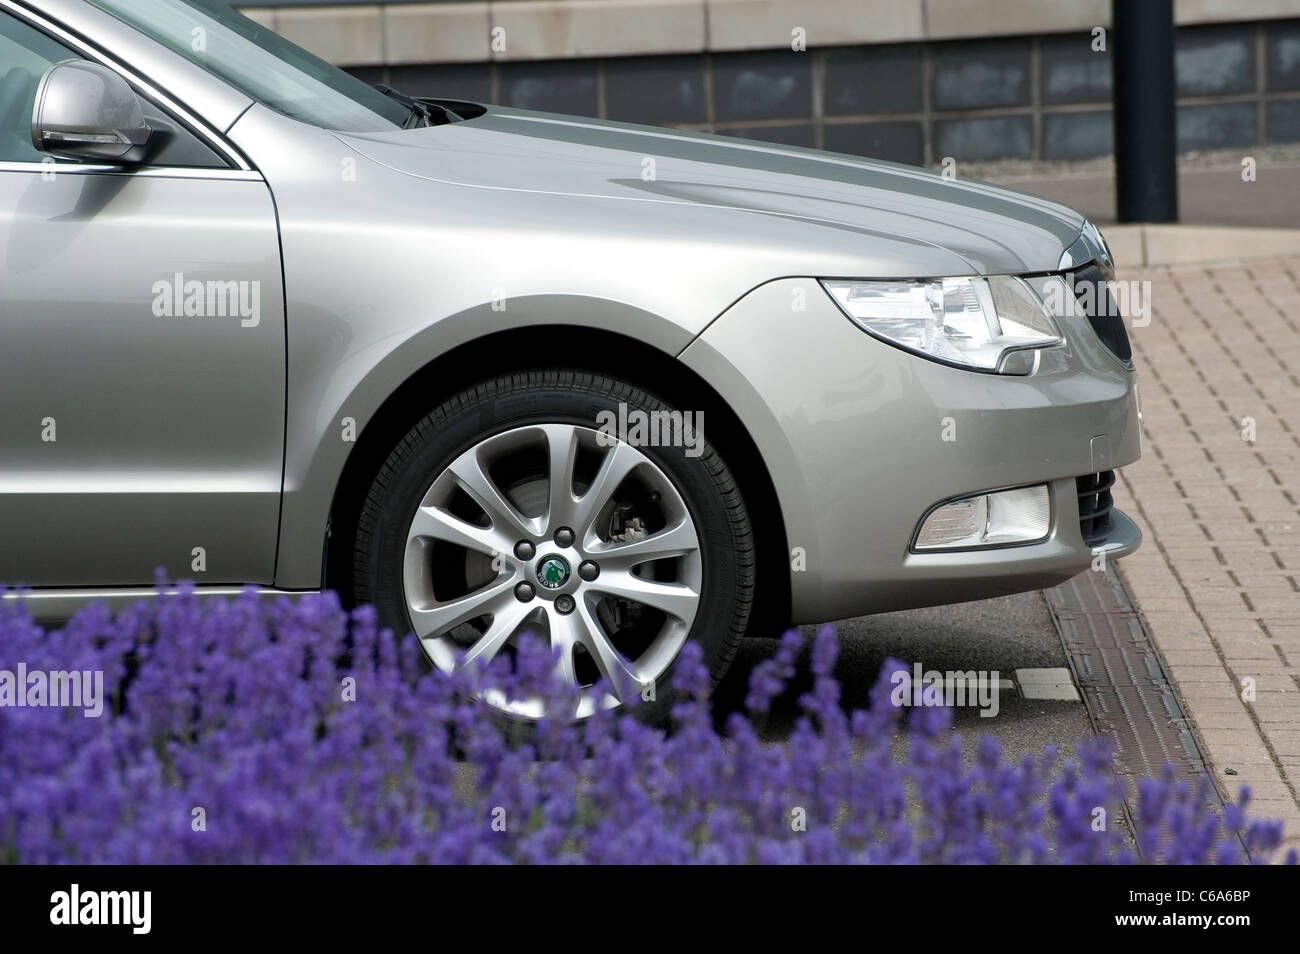 Close up of the front side of a Silver Skoda Superb car parked outside offices in England. - Stock Image